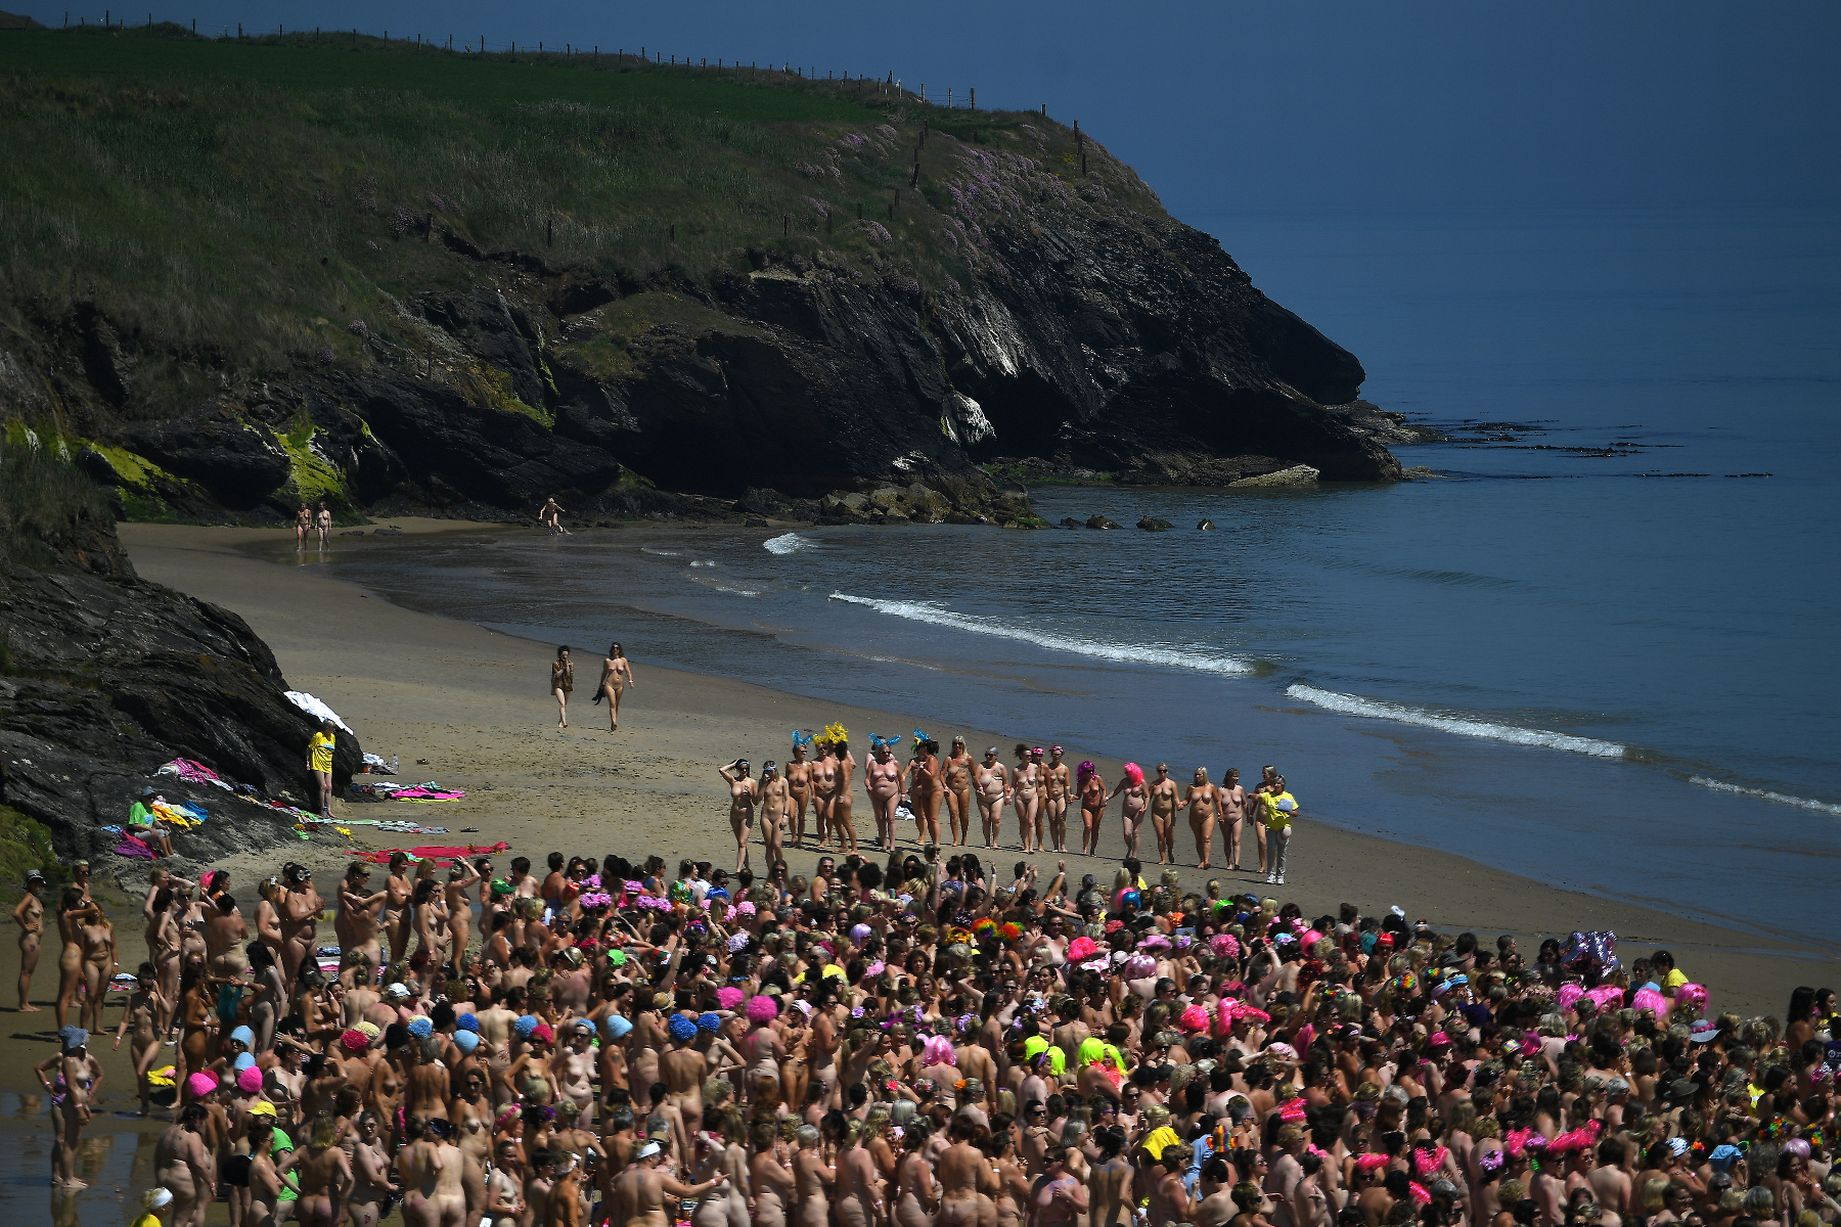 Cancer, New skinny-dipping world record set by thousands of women – and raised funds to fight cancer too